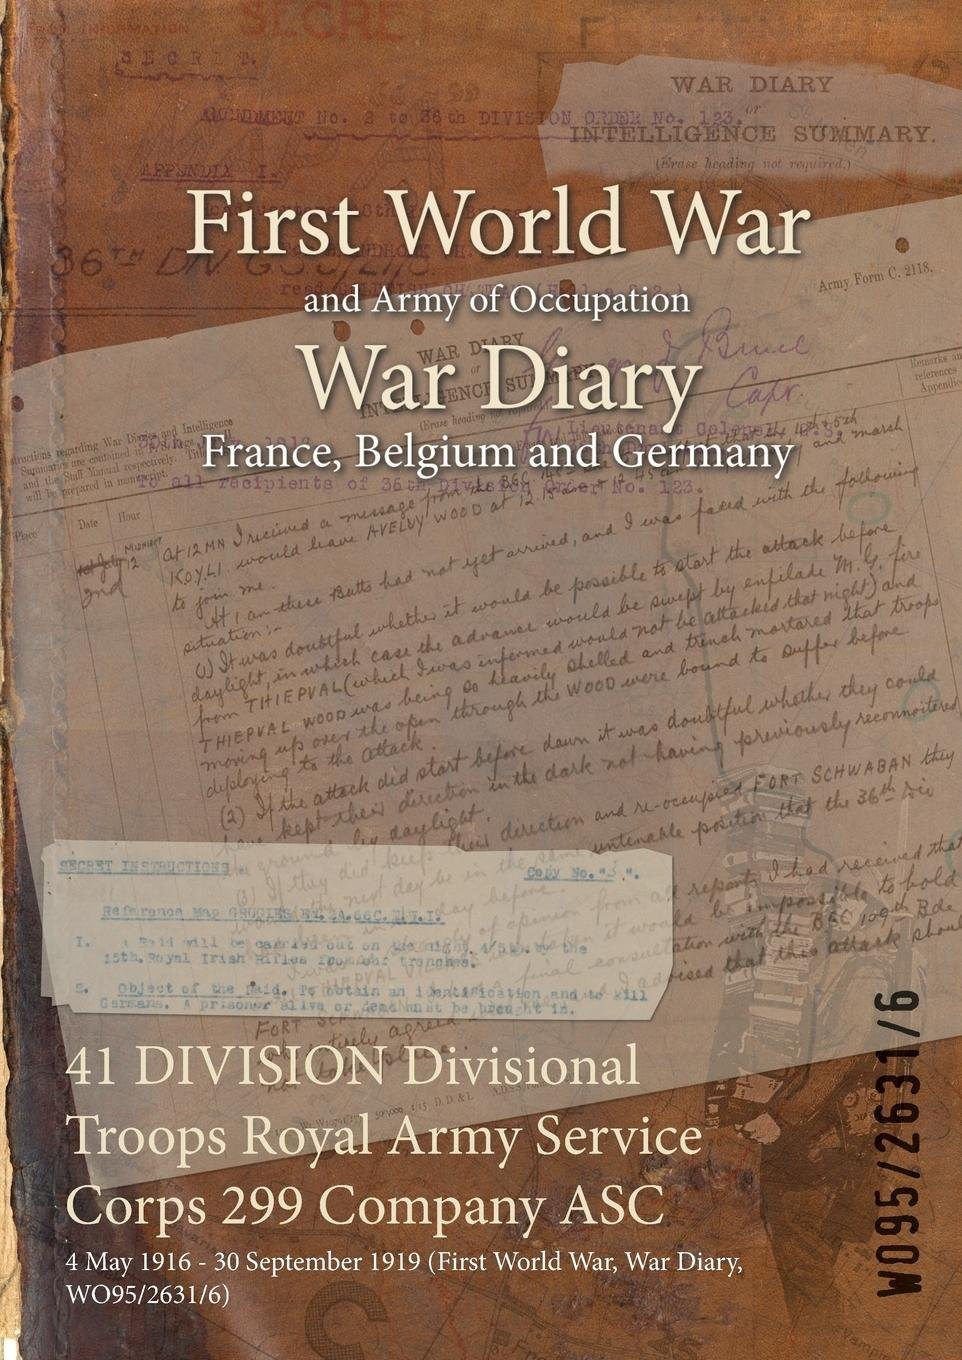 41 Division Divisional Troops Royal Army Service Corps 299 Company Asc: 4 May 1916 - 30 September 1919 (First World War, War Diary, Wo95/2631/6) ebook